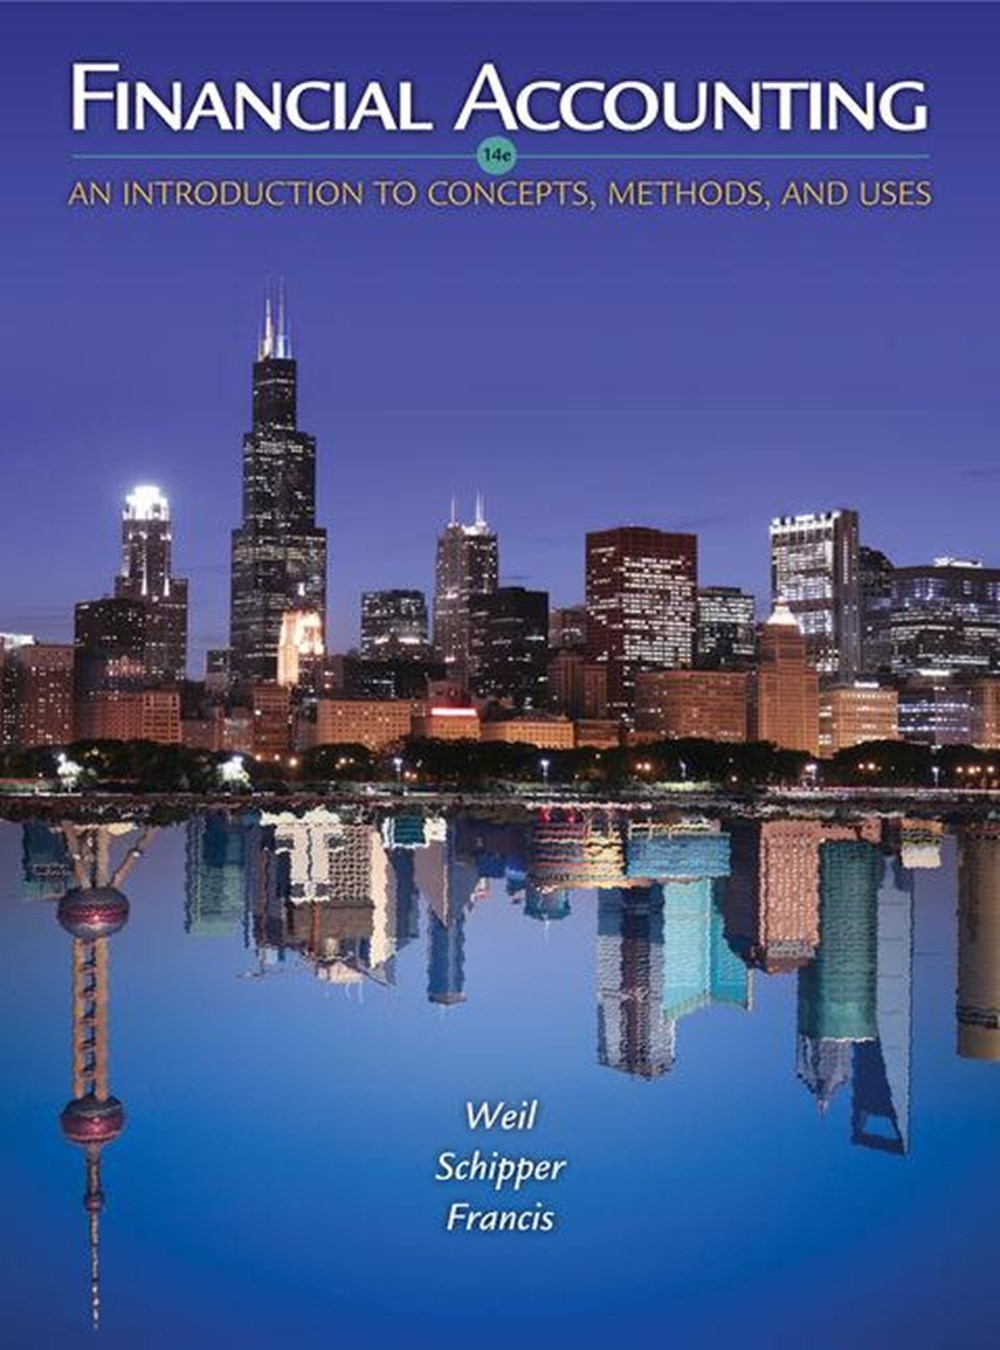 Financial Accounting An Introduction to Concepts, Methods, and Uses